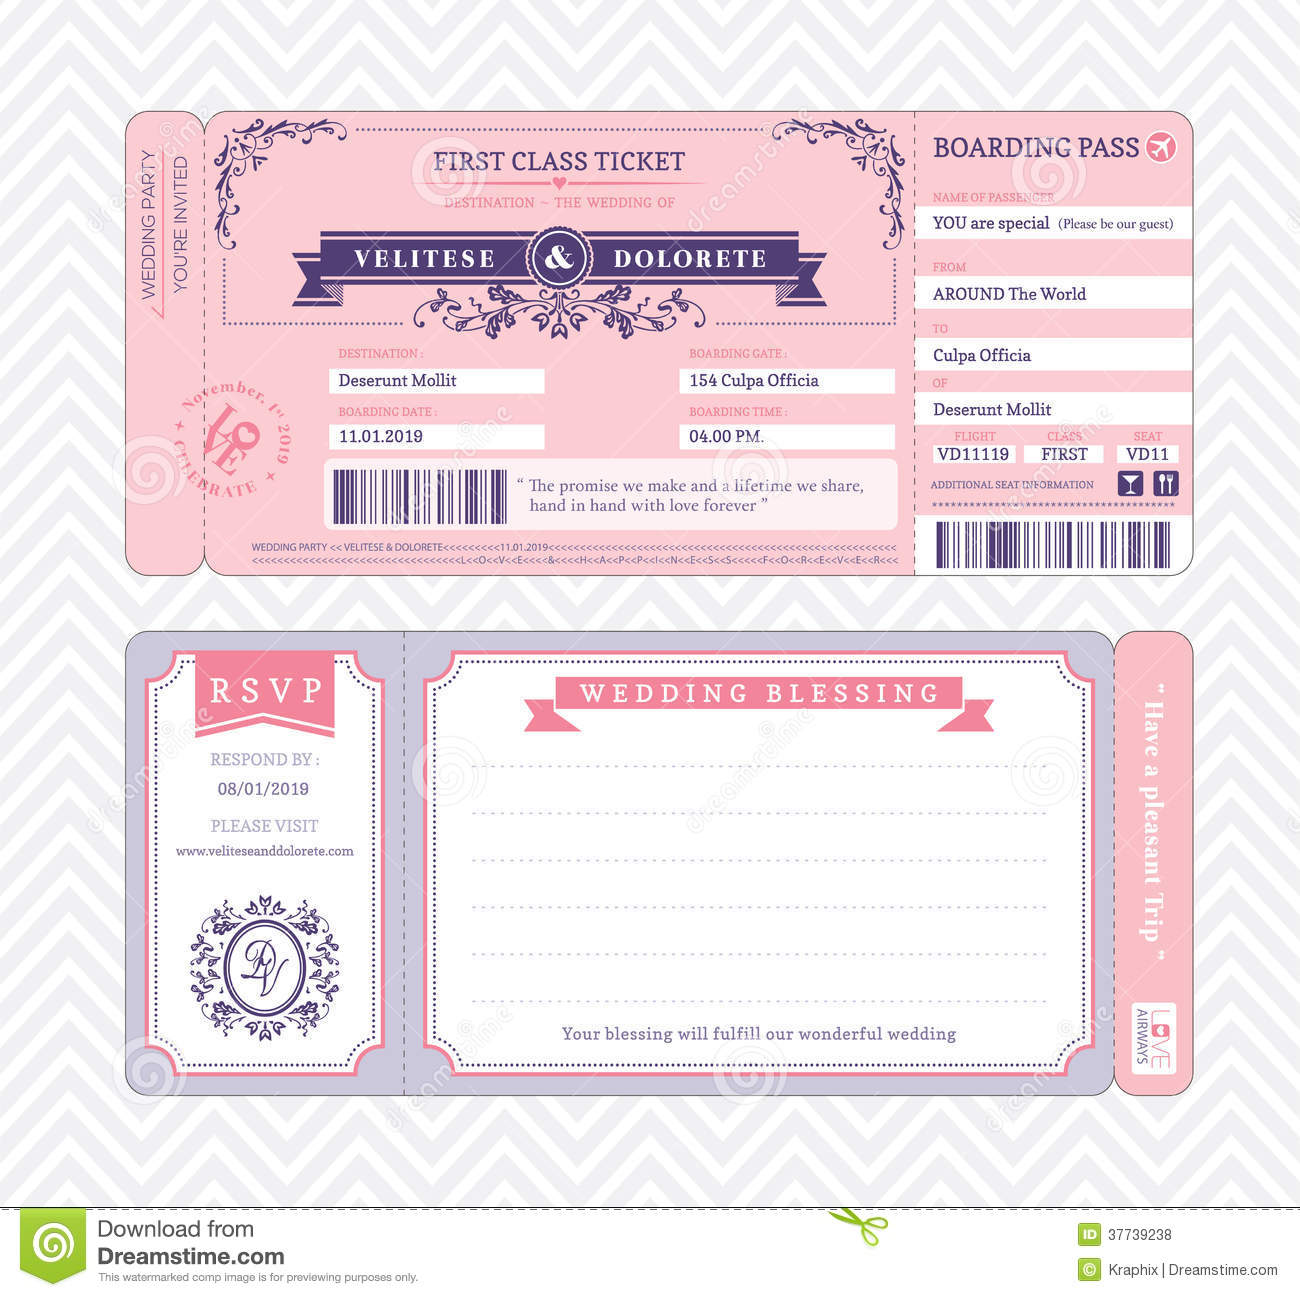 Boarding pass wedding invitation template stock vector boarding pass wedding invitation template stopboris